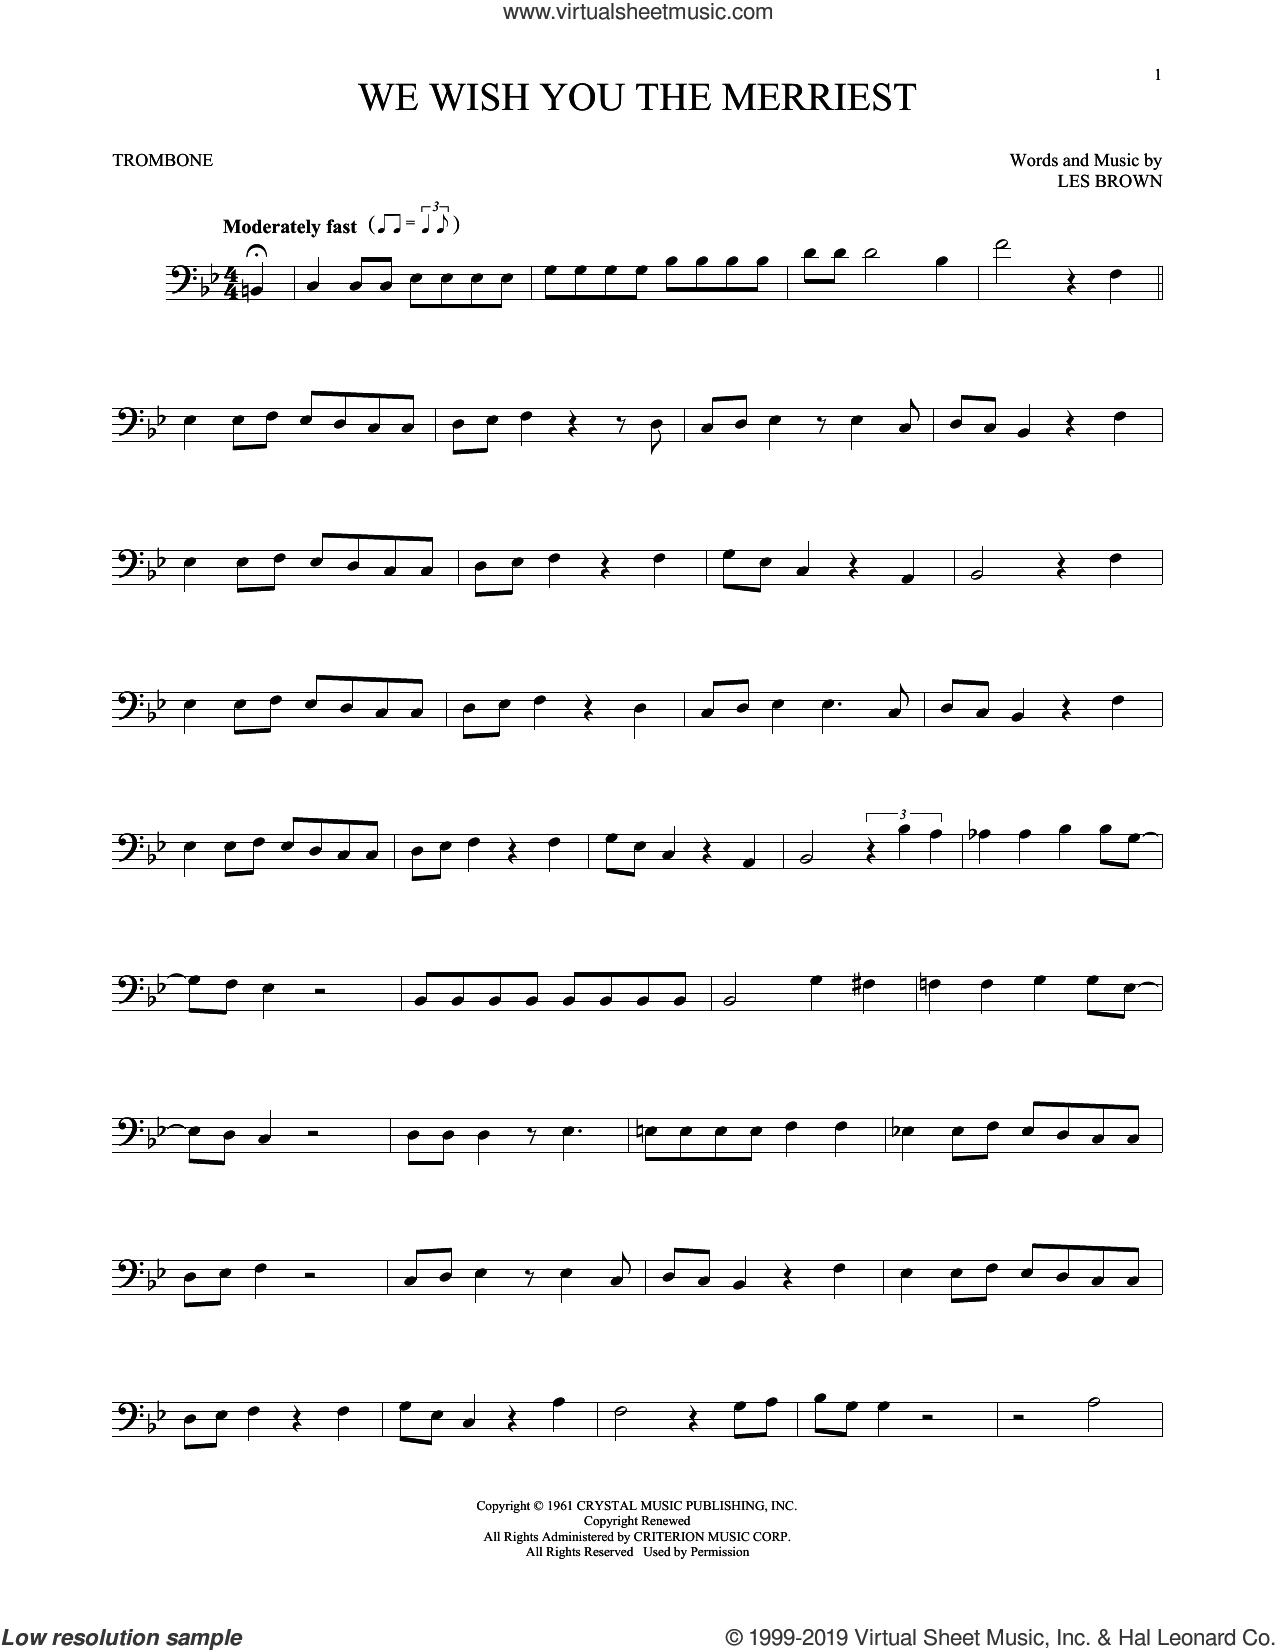 We Wish You The Merriest sheet music for trombone solo by Frank Sinatra and Les Brown, intermediate skill level